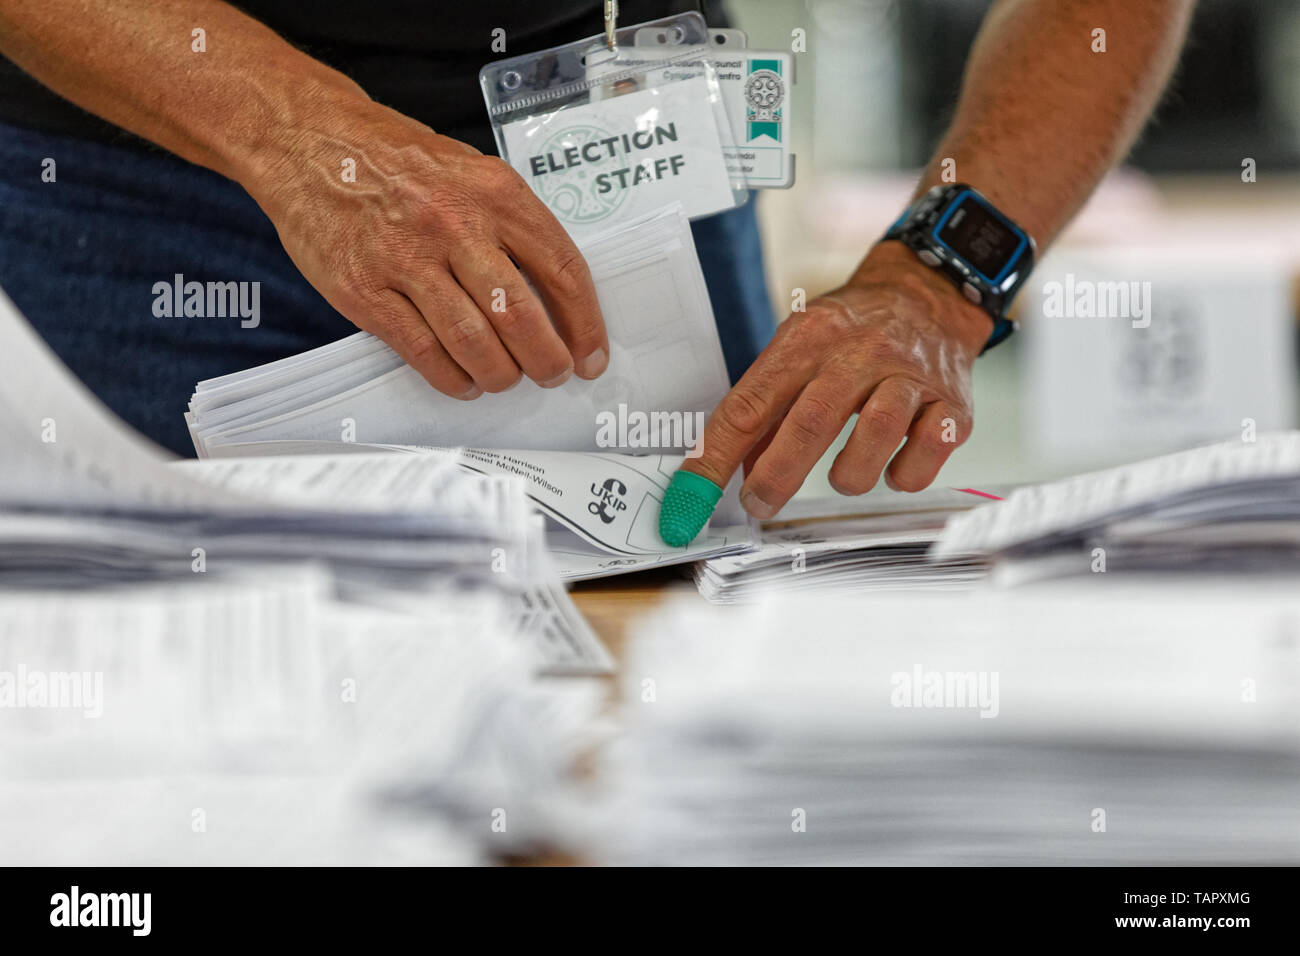 Haverfordwest, UK. 26th May, 2019. Ballots are being counted at the Pembrokeshire Archives in Haverfordwest Credit: ATHENA PICTURE AGENCY LTD/Alamy Live News - Stock Image